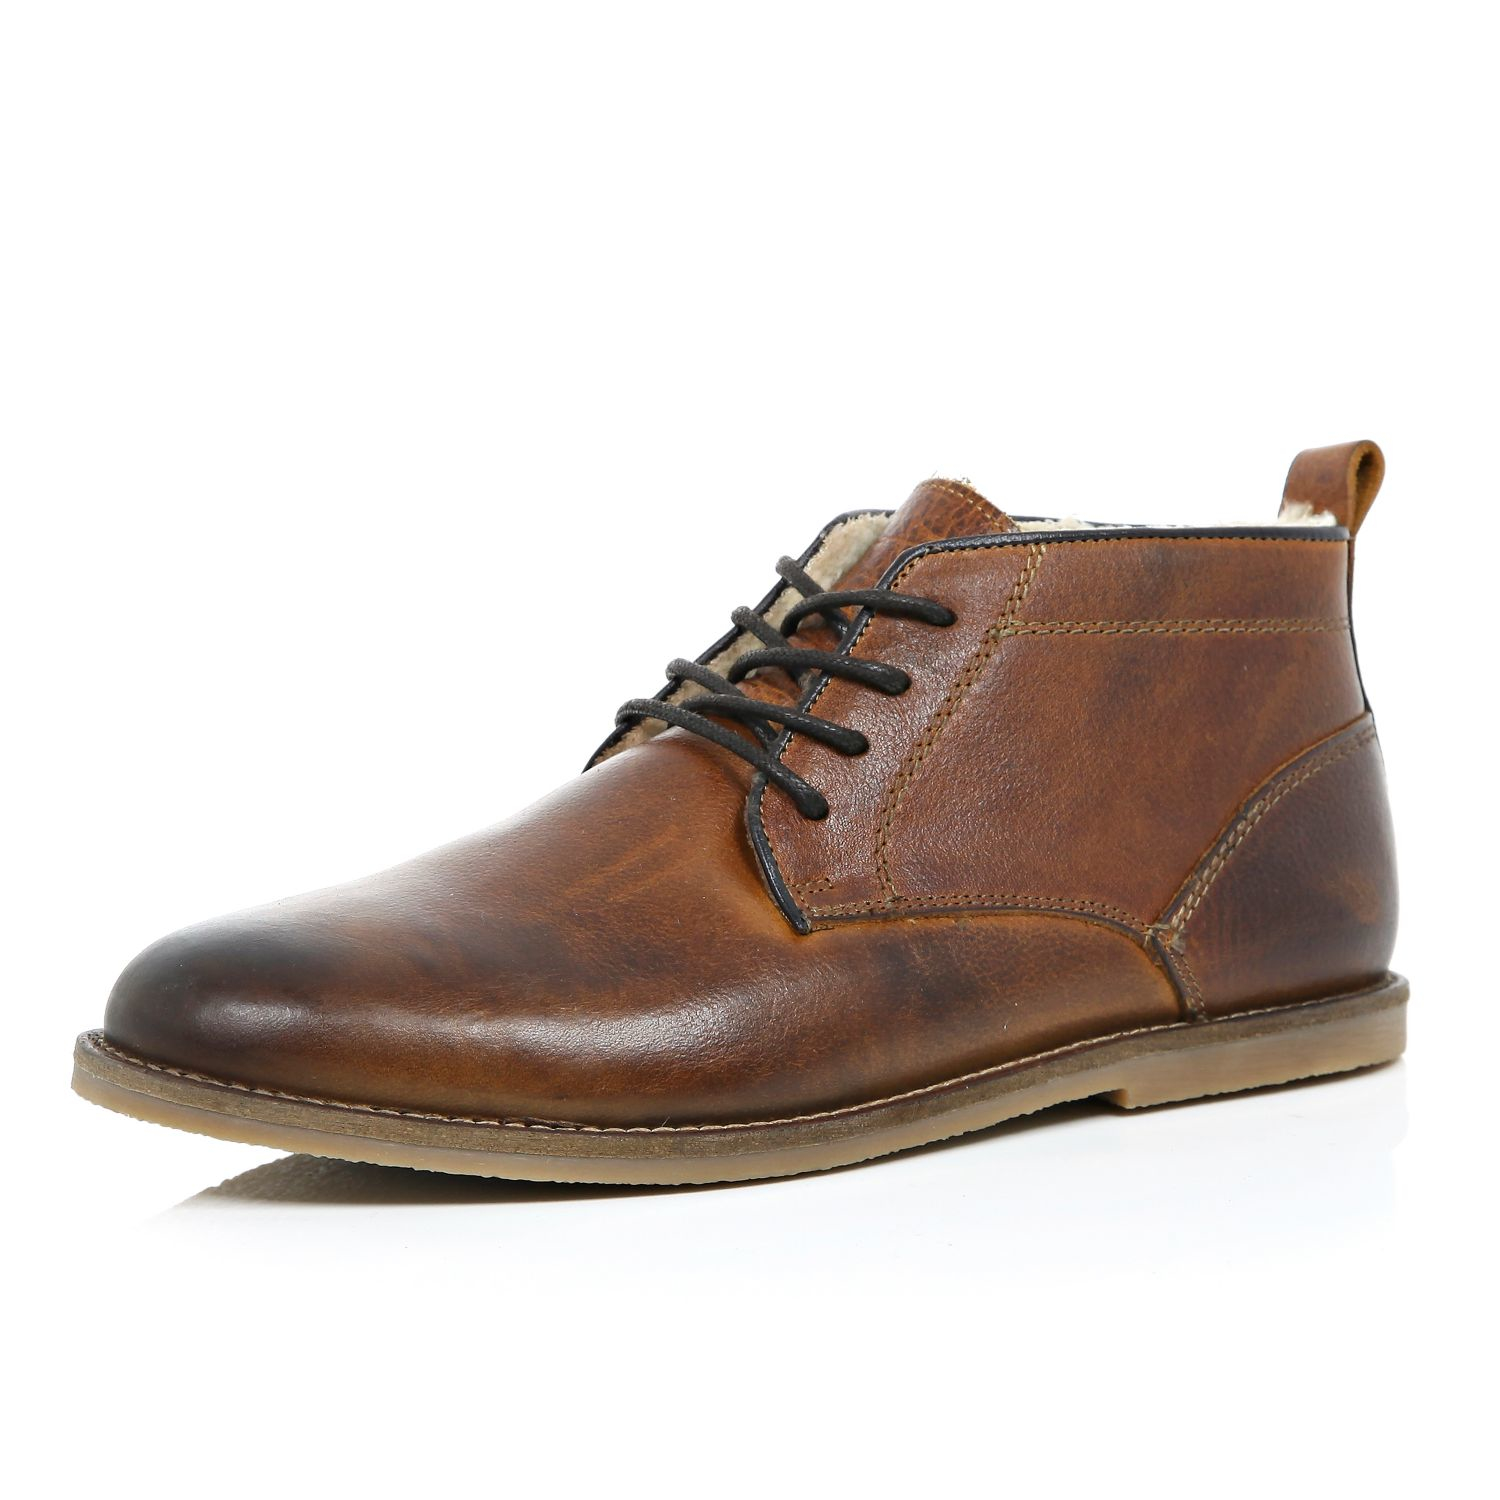 River Island Brown Leather Desert Boots